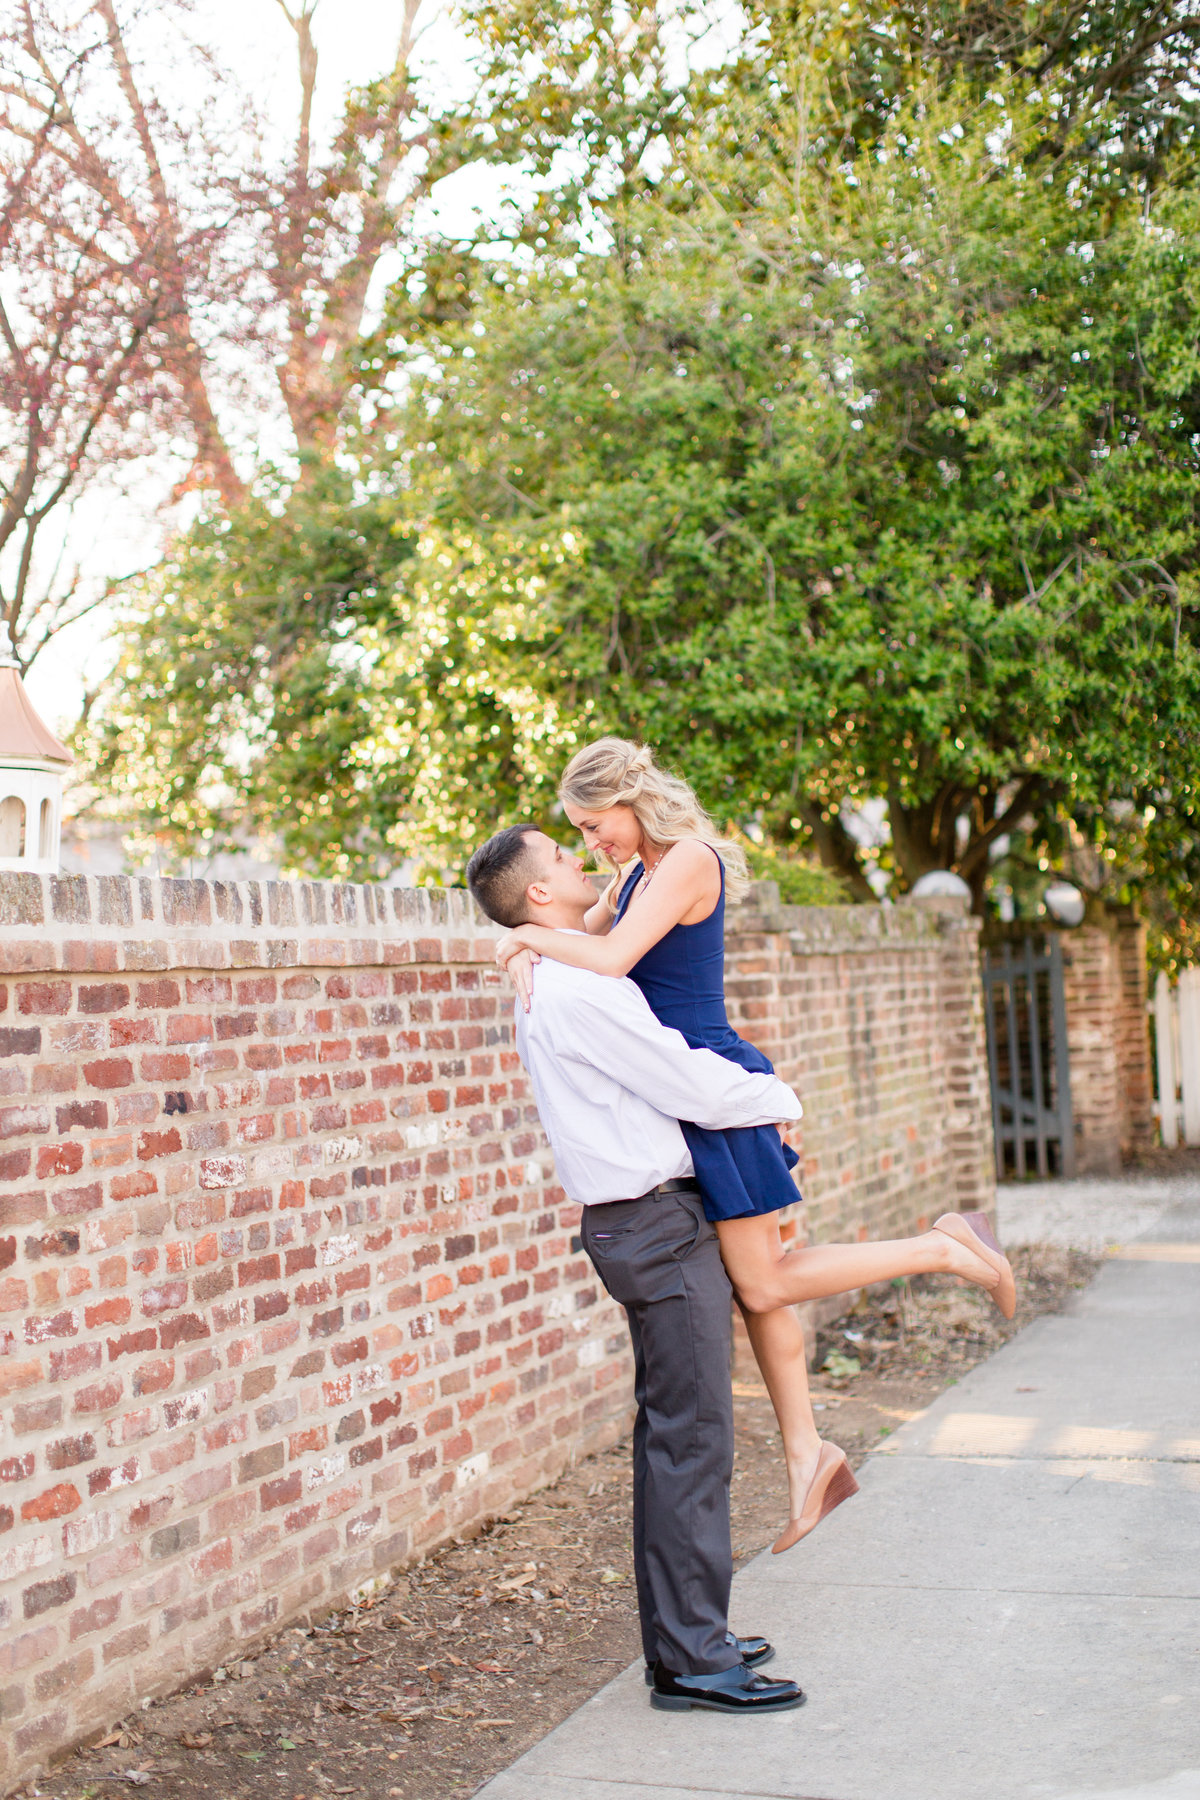 Downtown Fredericksburg, Virginia engagement photography by Marie Hamilton Photography